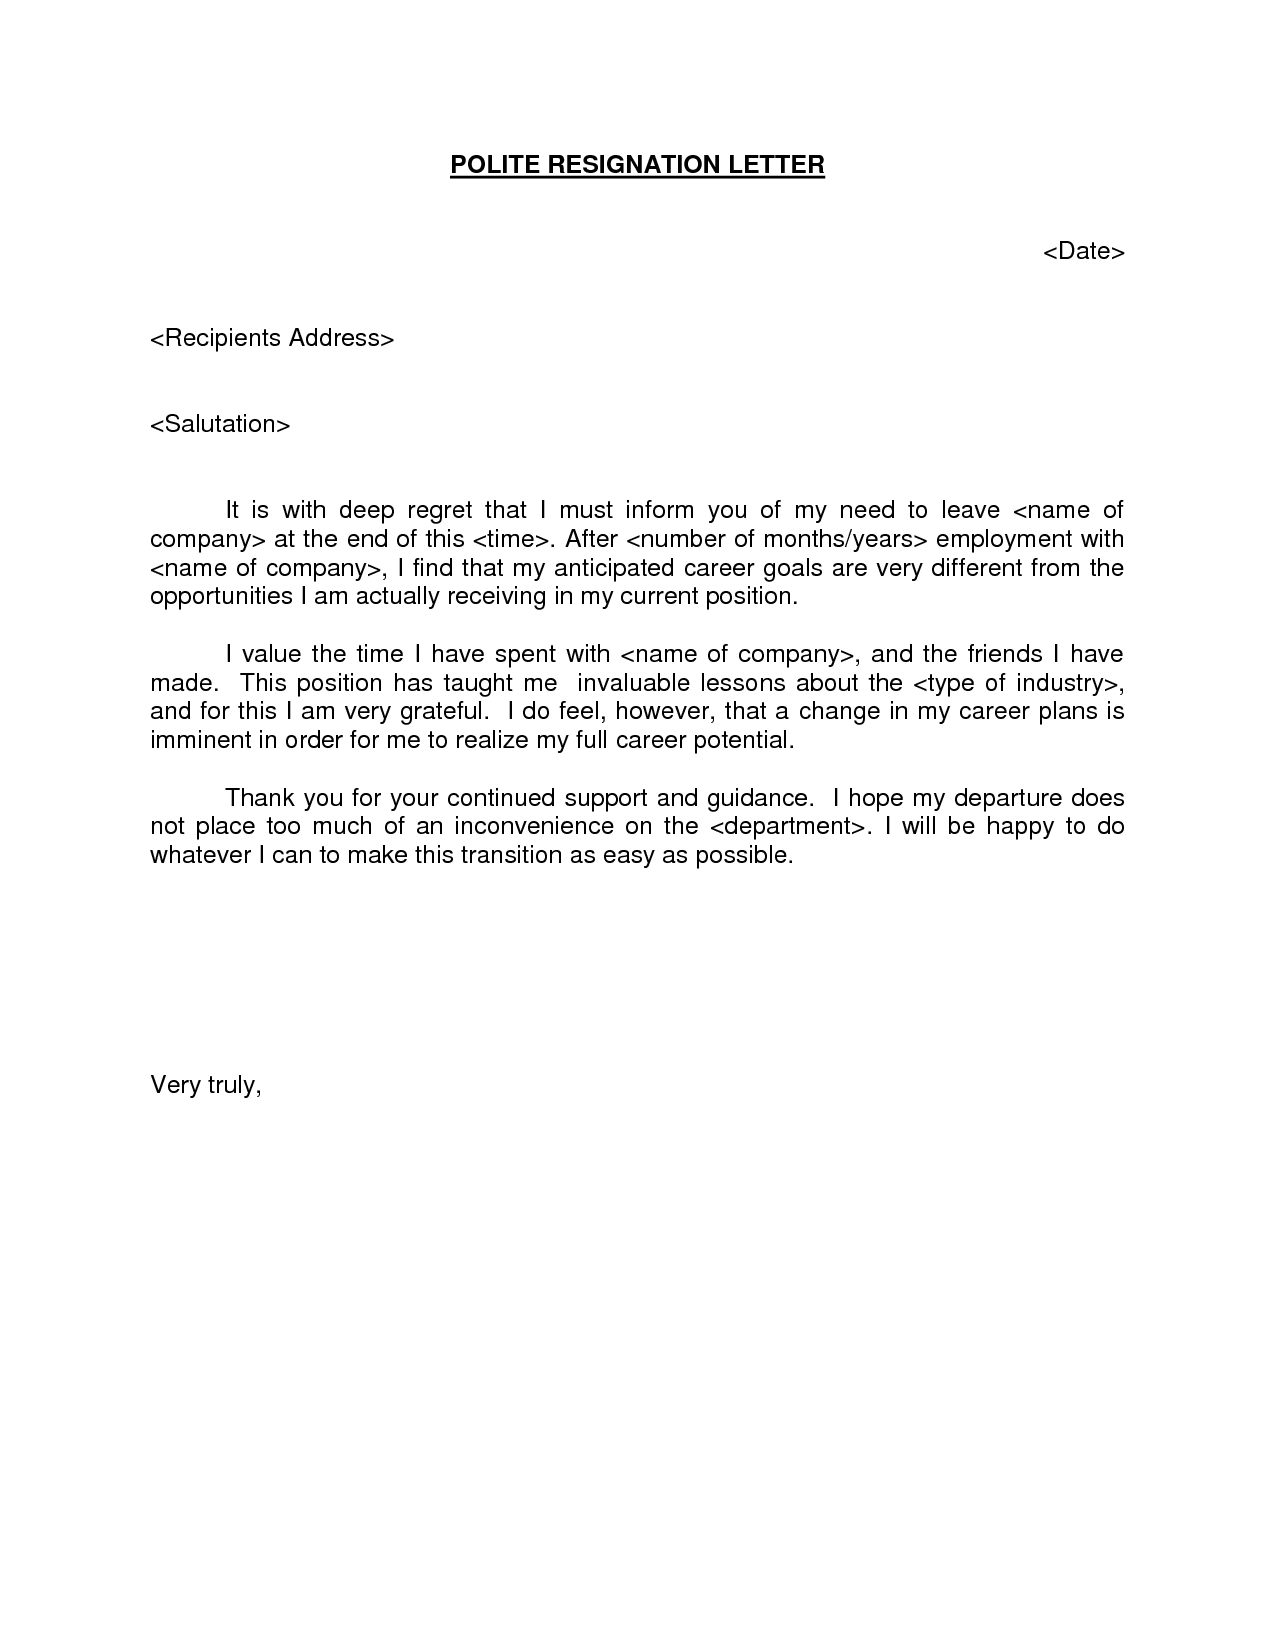 How to write resignation letter heartpulsar how to write resignation letter polite resignation letter bestdealformoneywriting a letter of how to write resignation letter expocarfo Choice Image